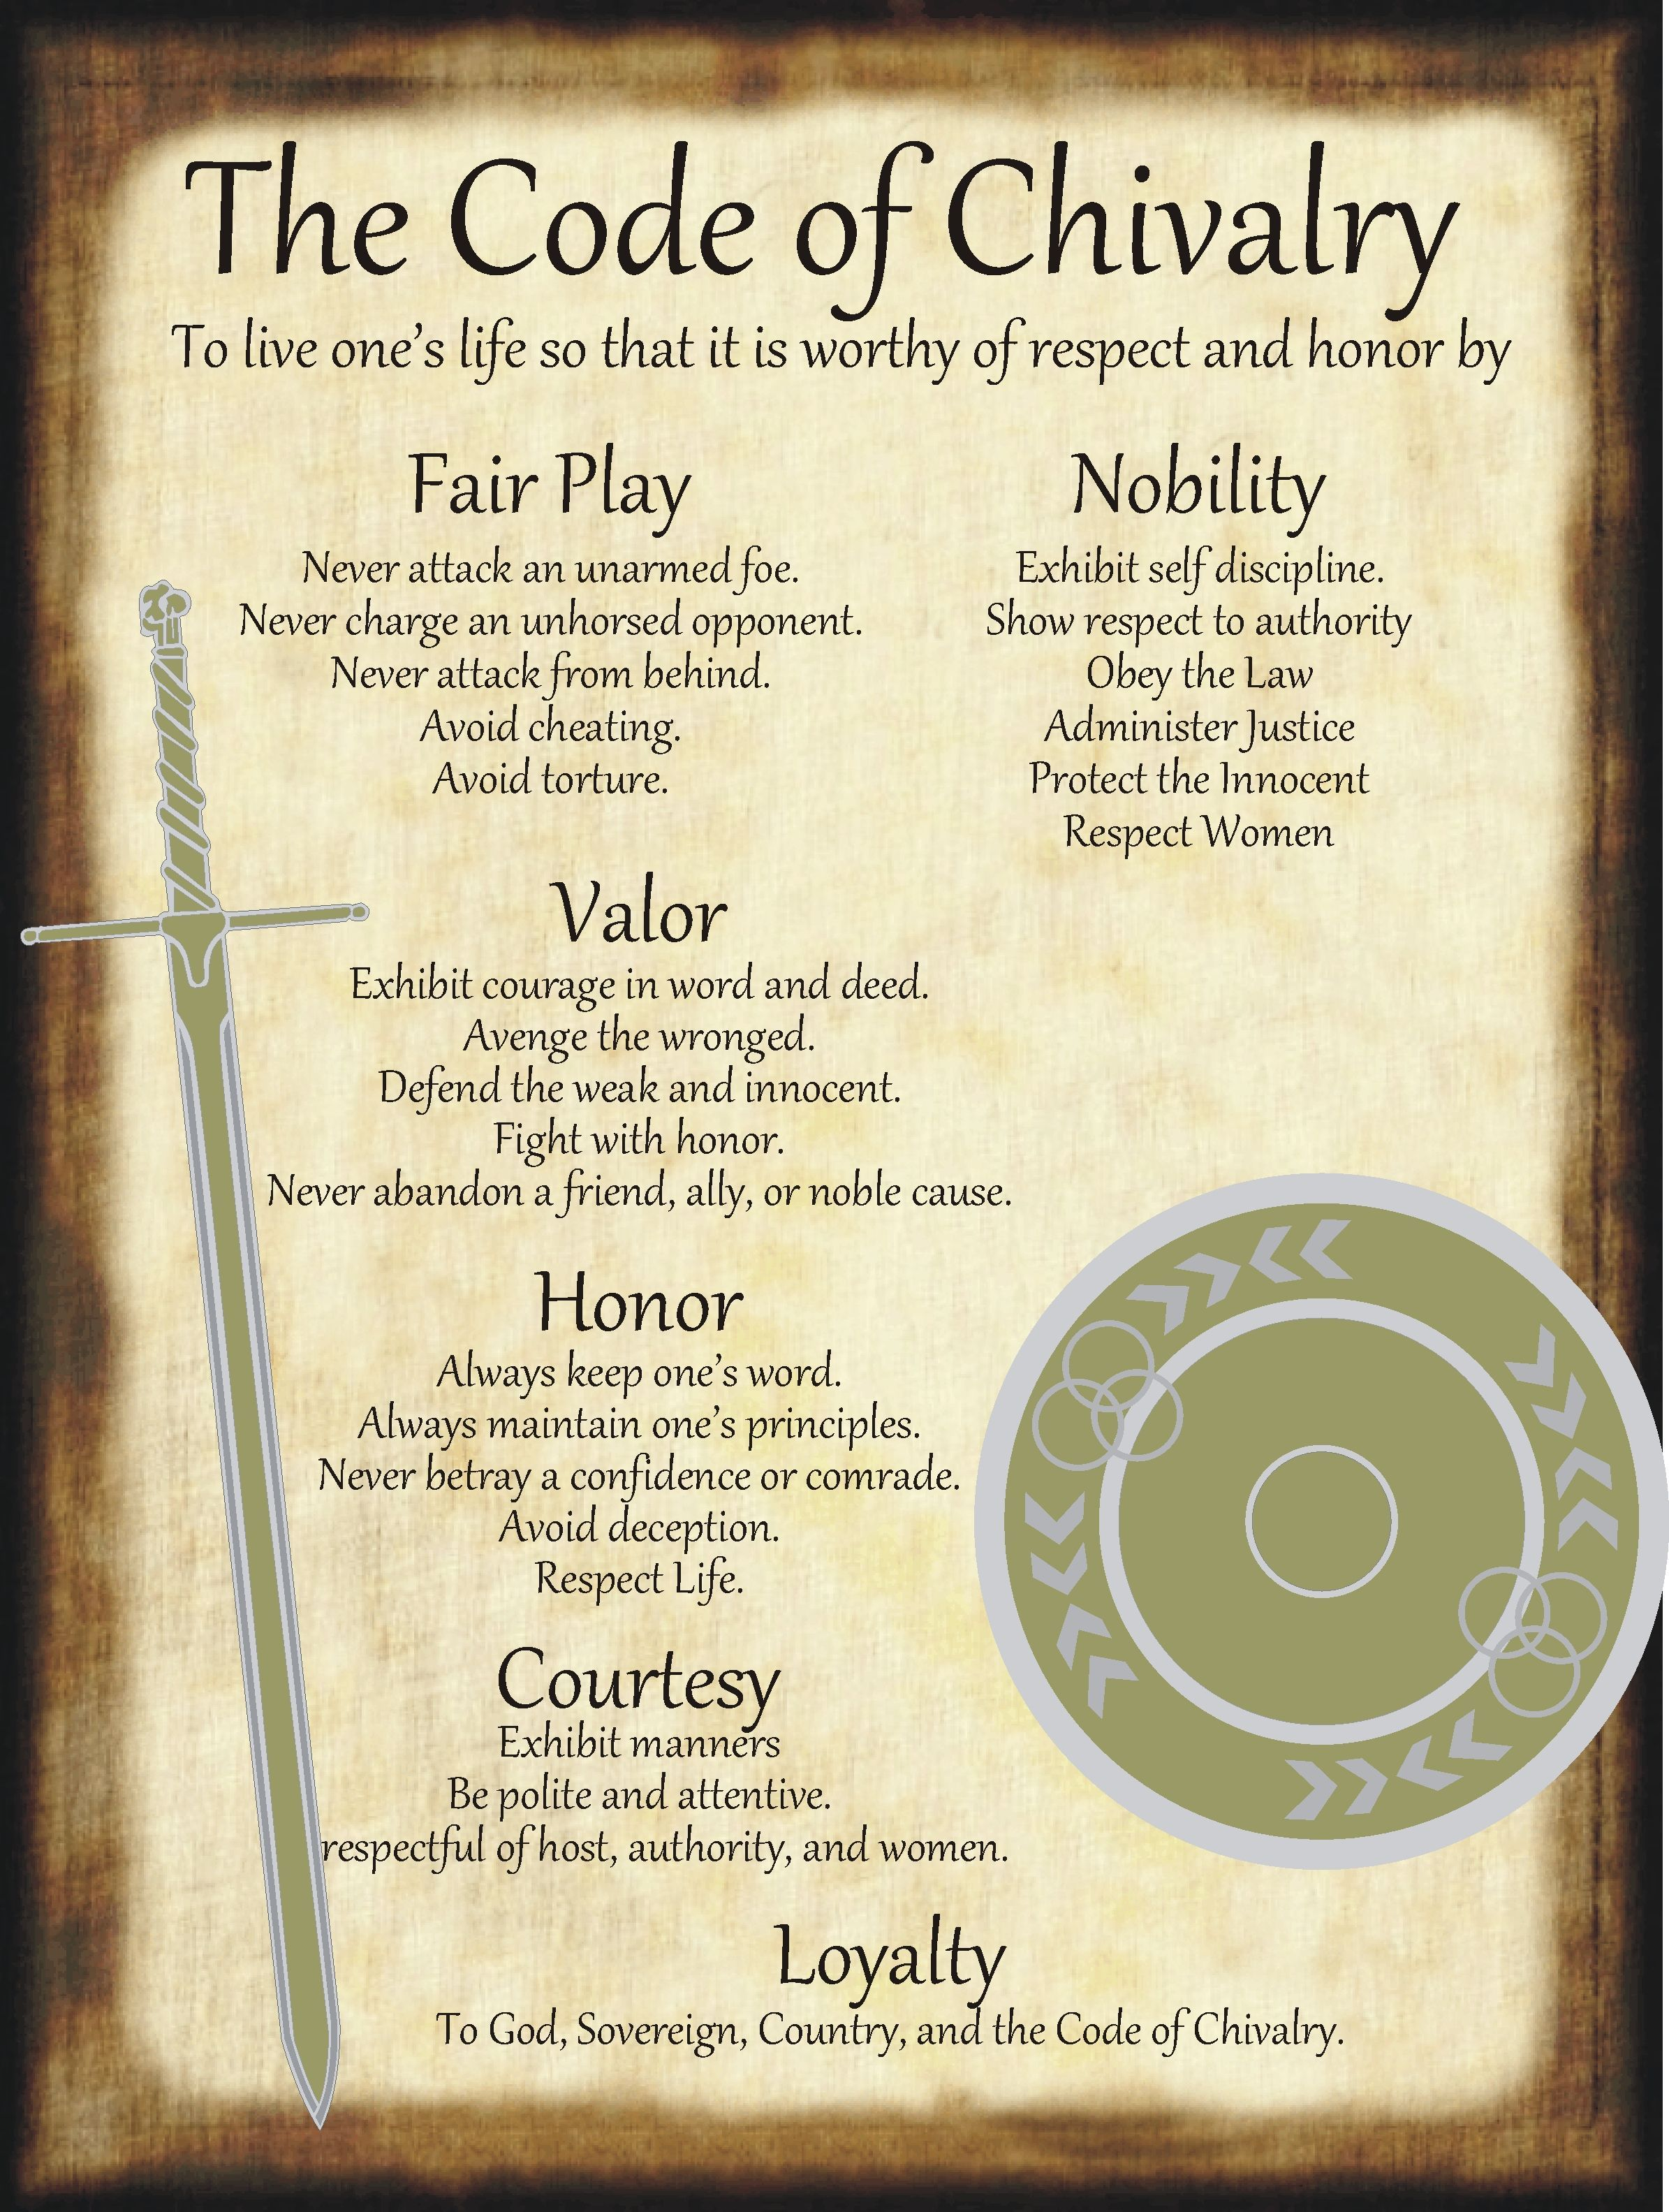 The Code of Chivalry for homemade Halloween Spell Book. #chivalryquotes The Code of Chivalry for homemade Halloween Spell Book. #chivalryquotes